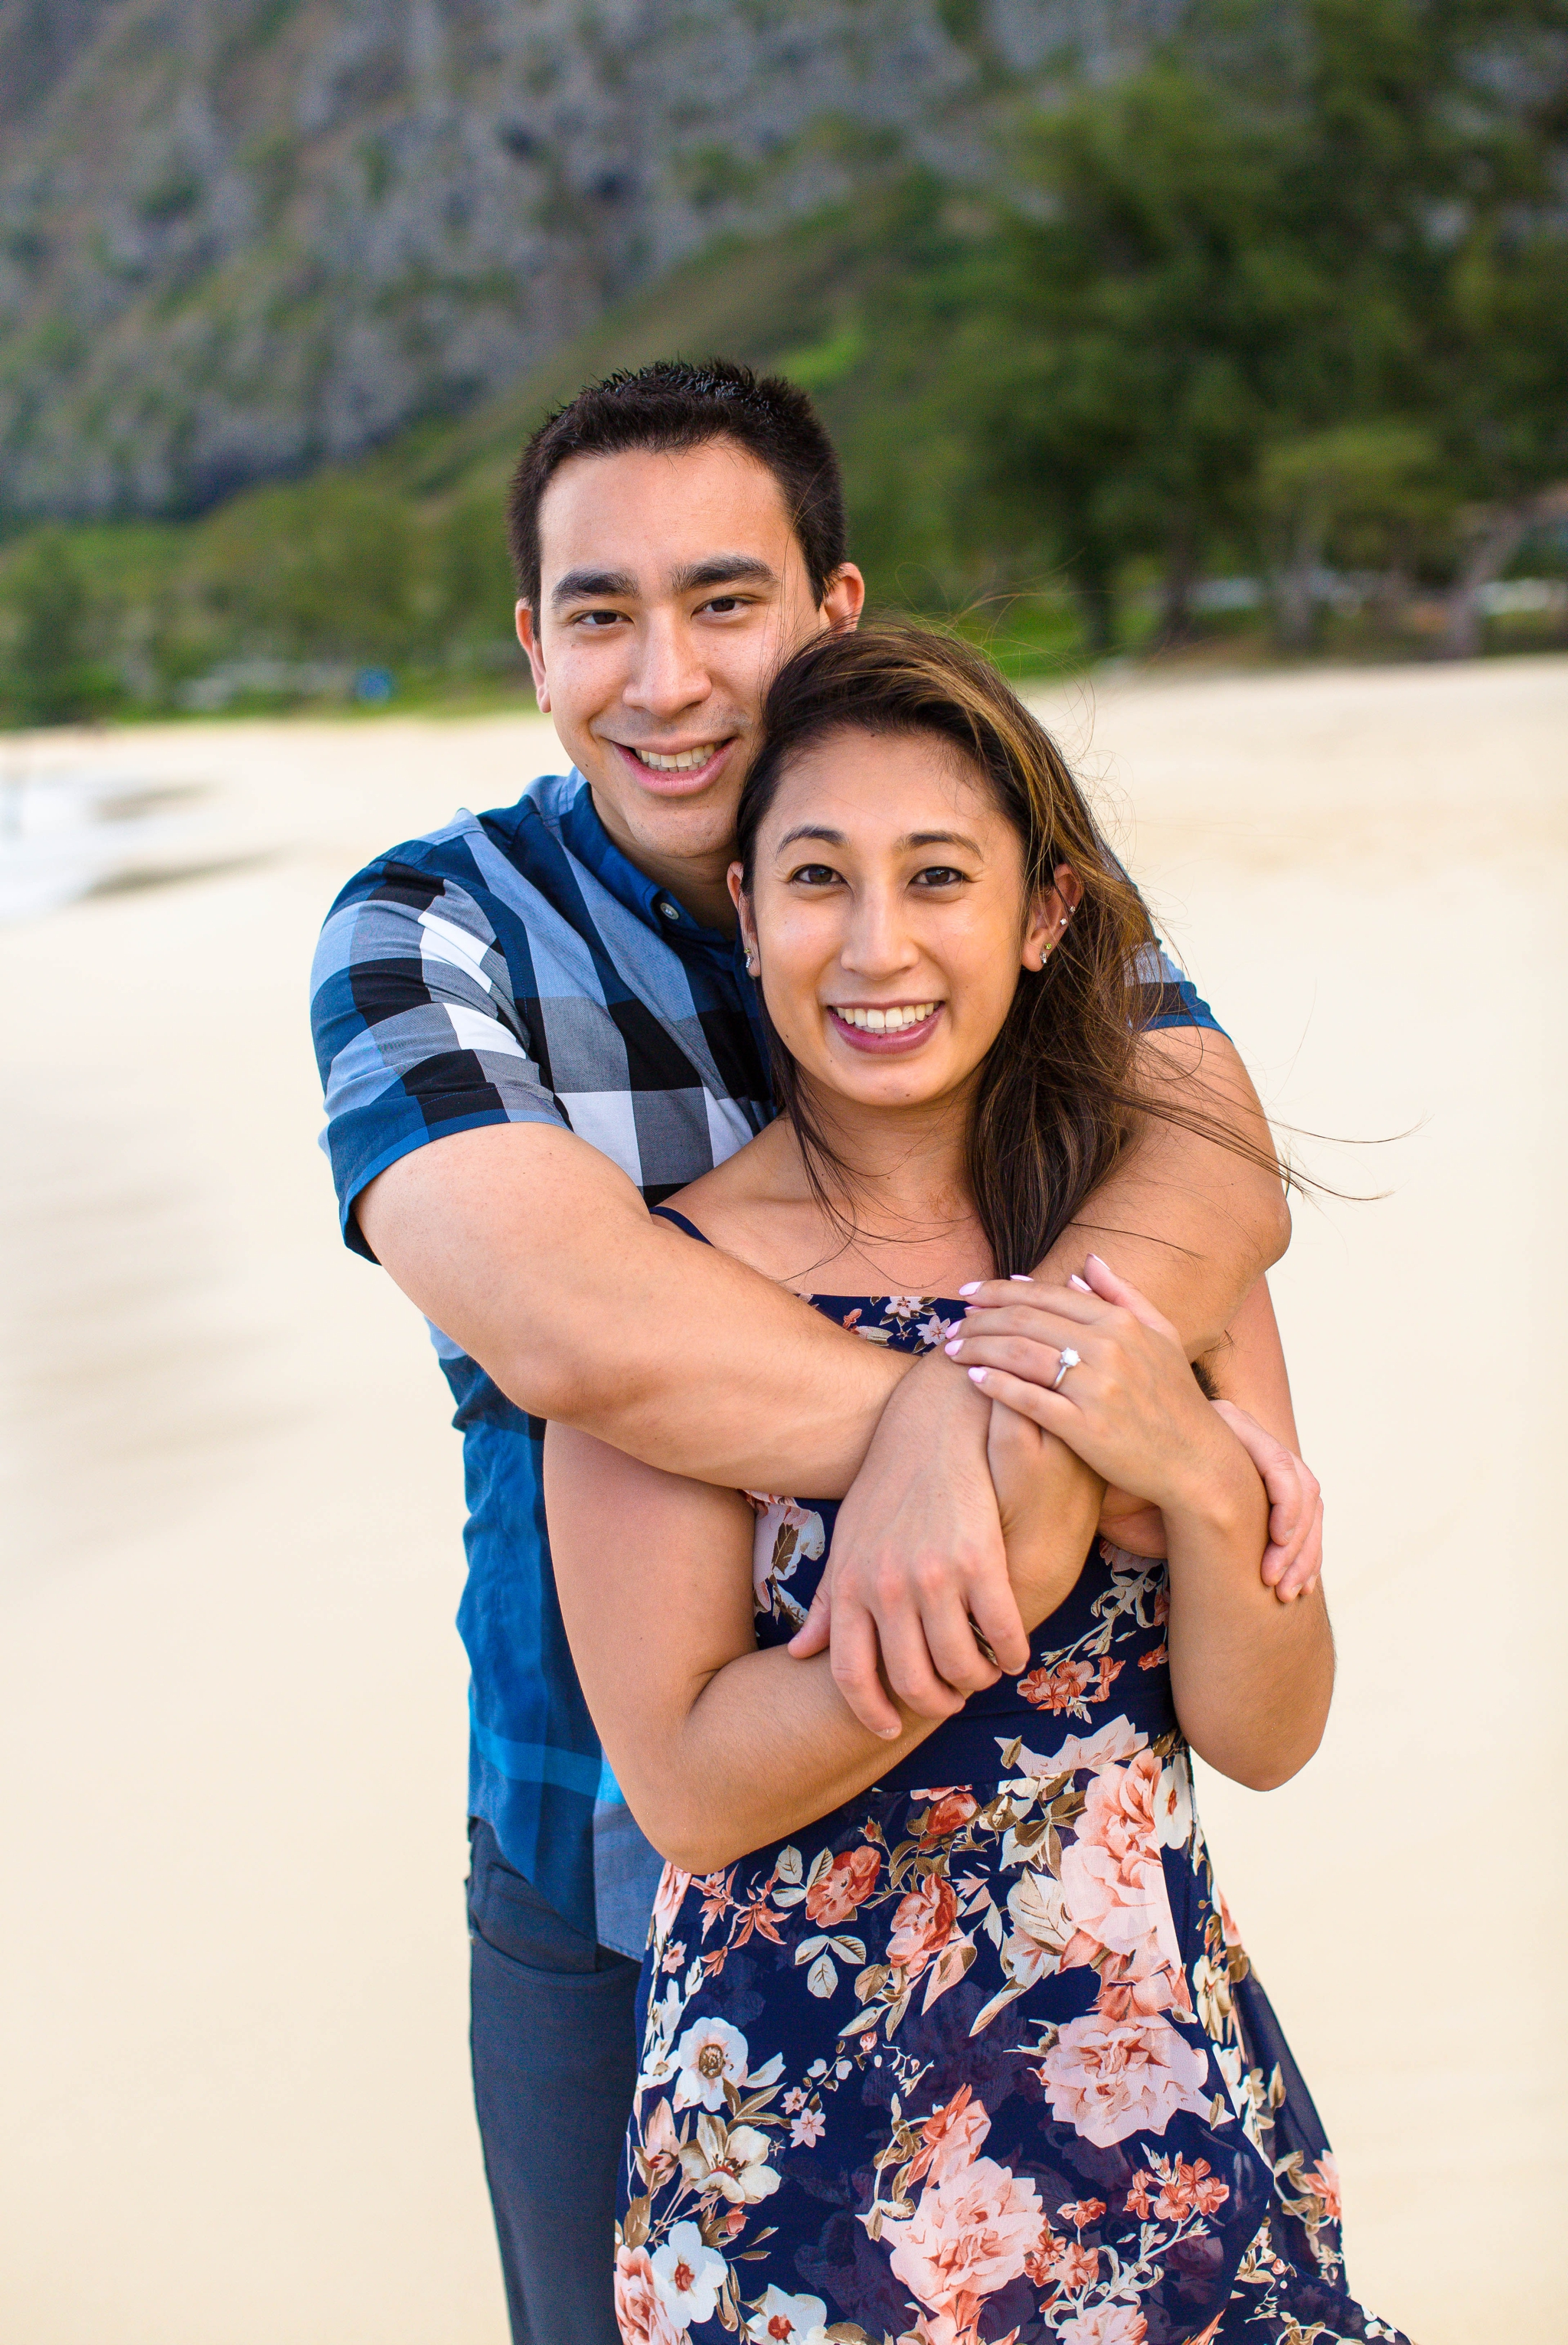 engagement photography session at waimanalo beach park - couple is kissing and snuggeling up to each other in the sand with the ocean and the mountains in the back ground - oahu hawaii wedding photographer